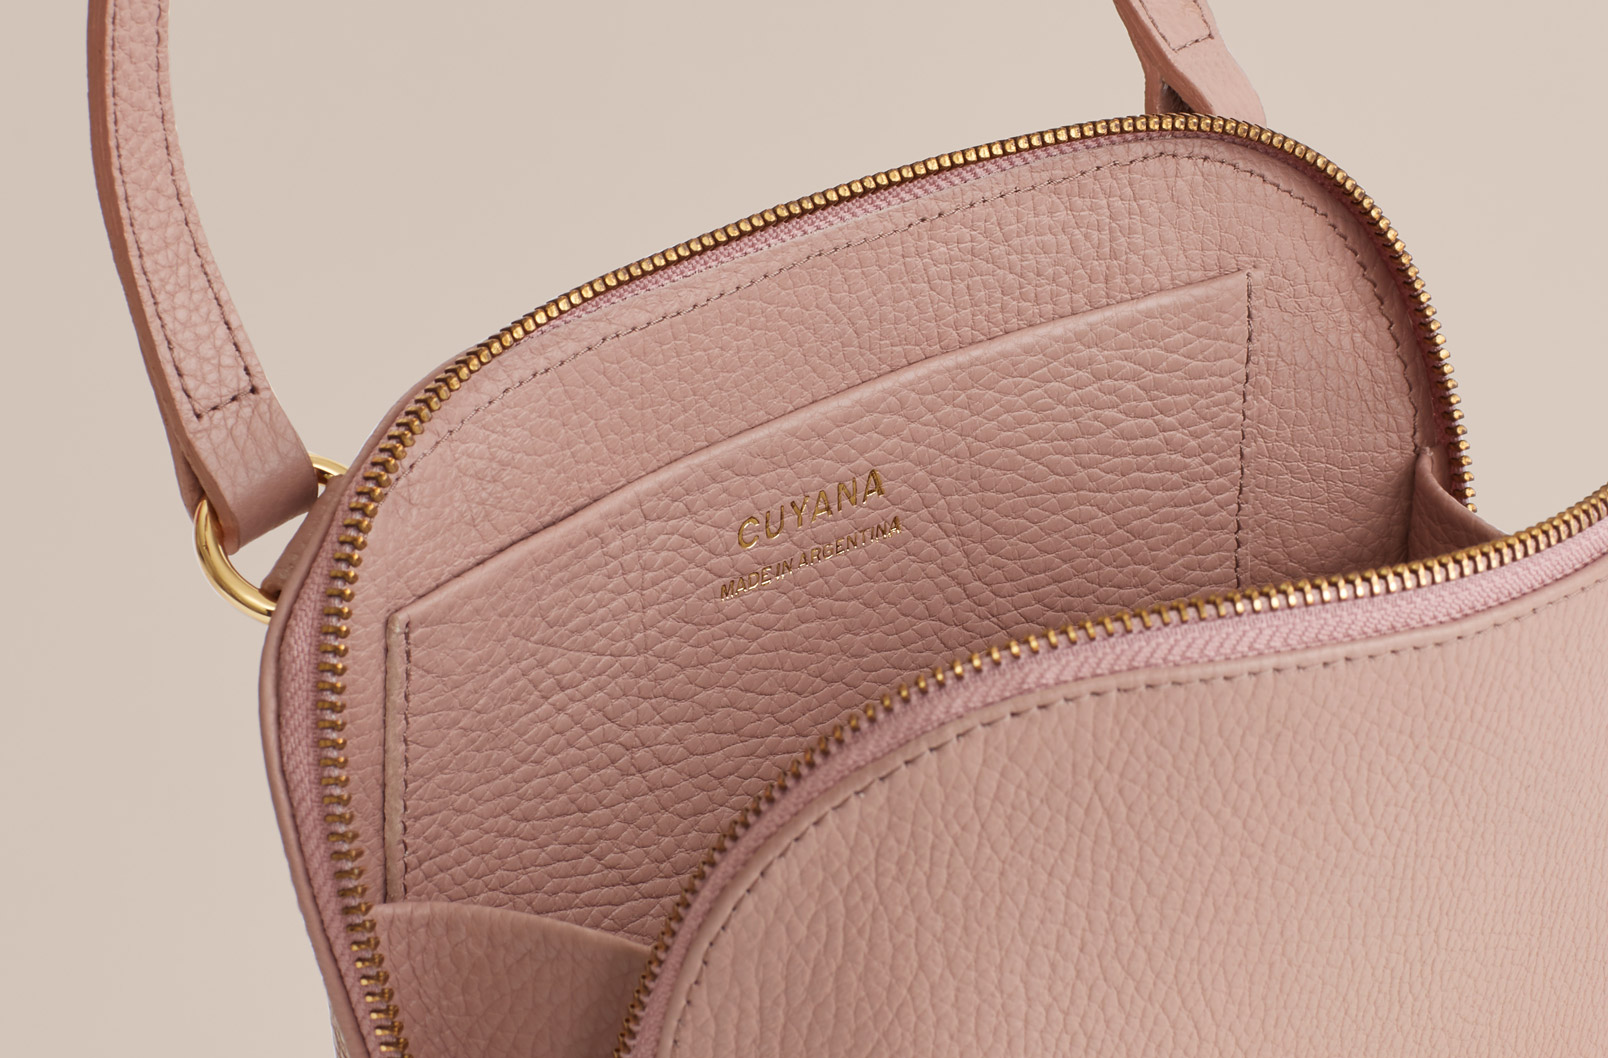 Image showing Cuyana Travel Case Crossbody in Soft Rose showing gusset to allow for easy access